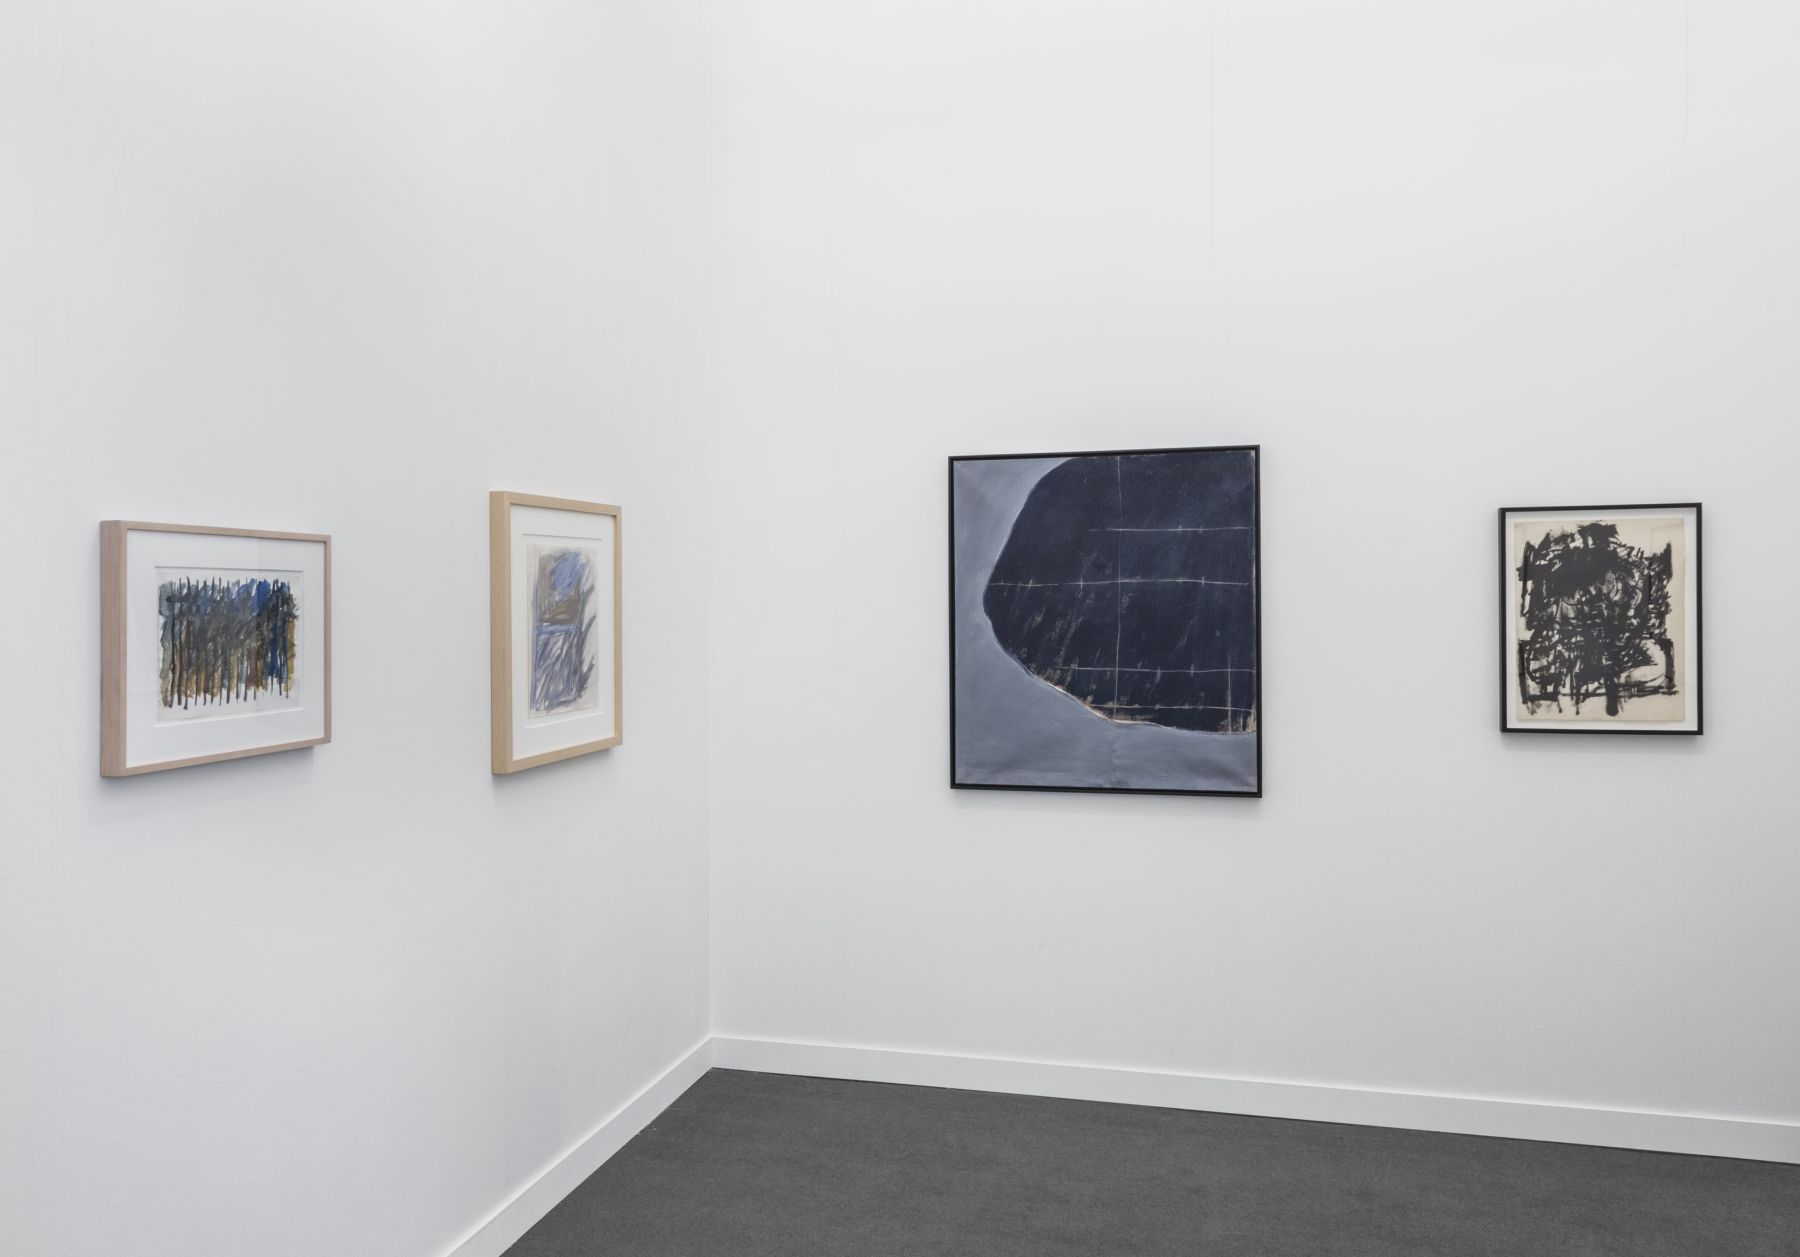 Alexander Gray AssociatesFrieze New York 2017Installation view